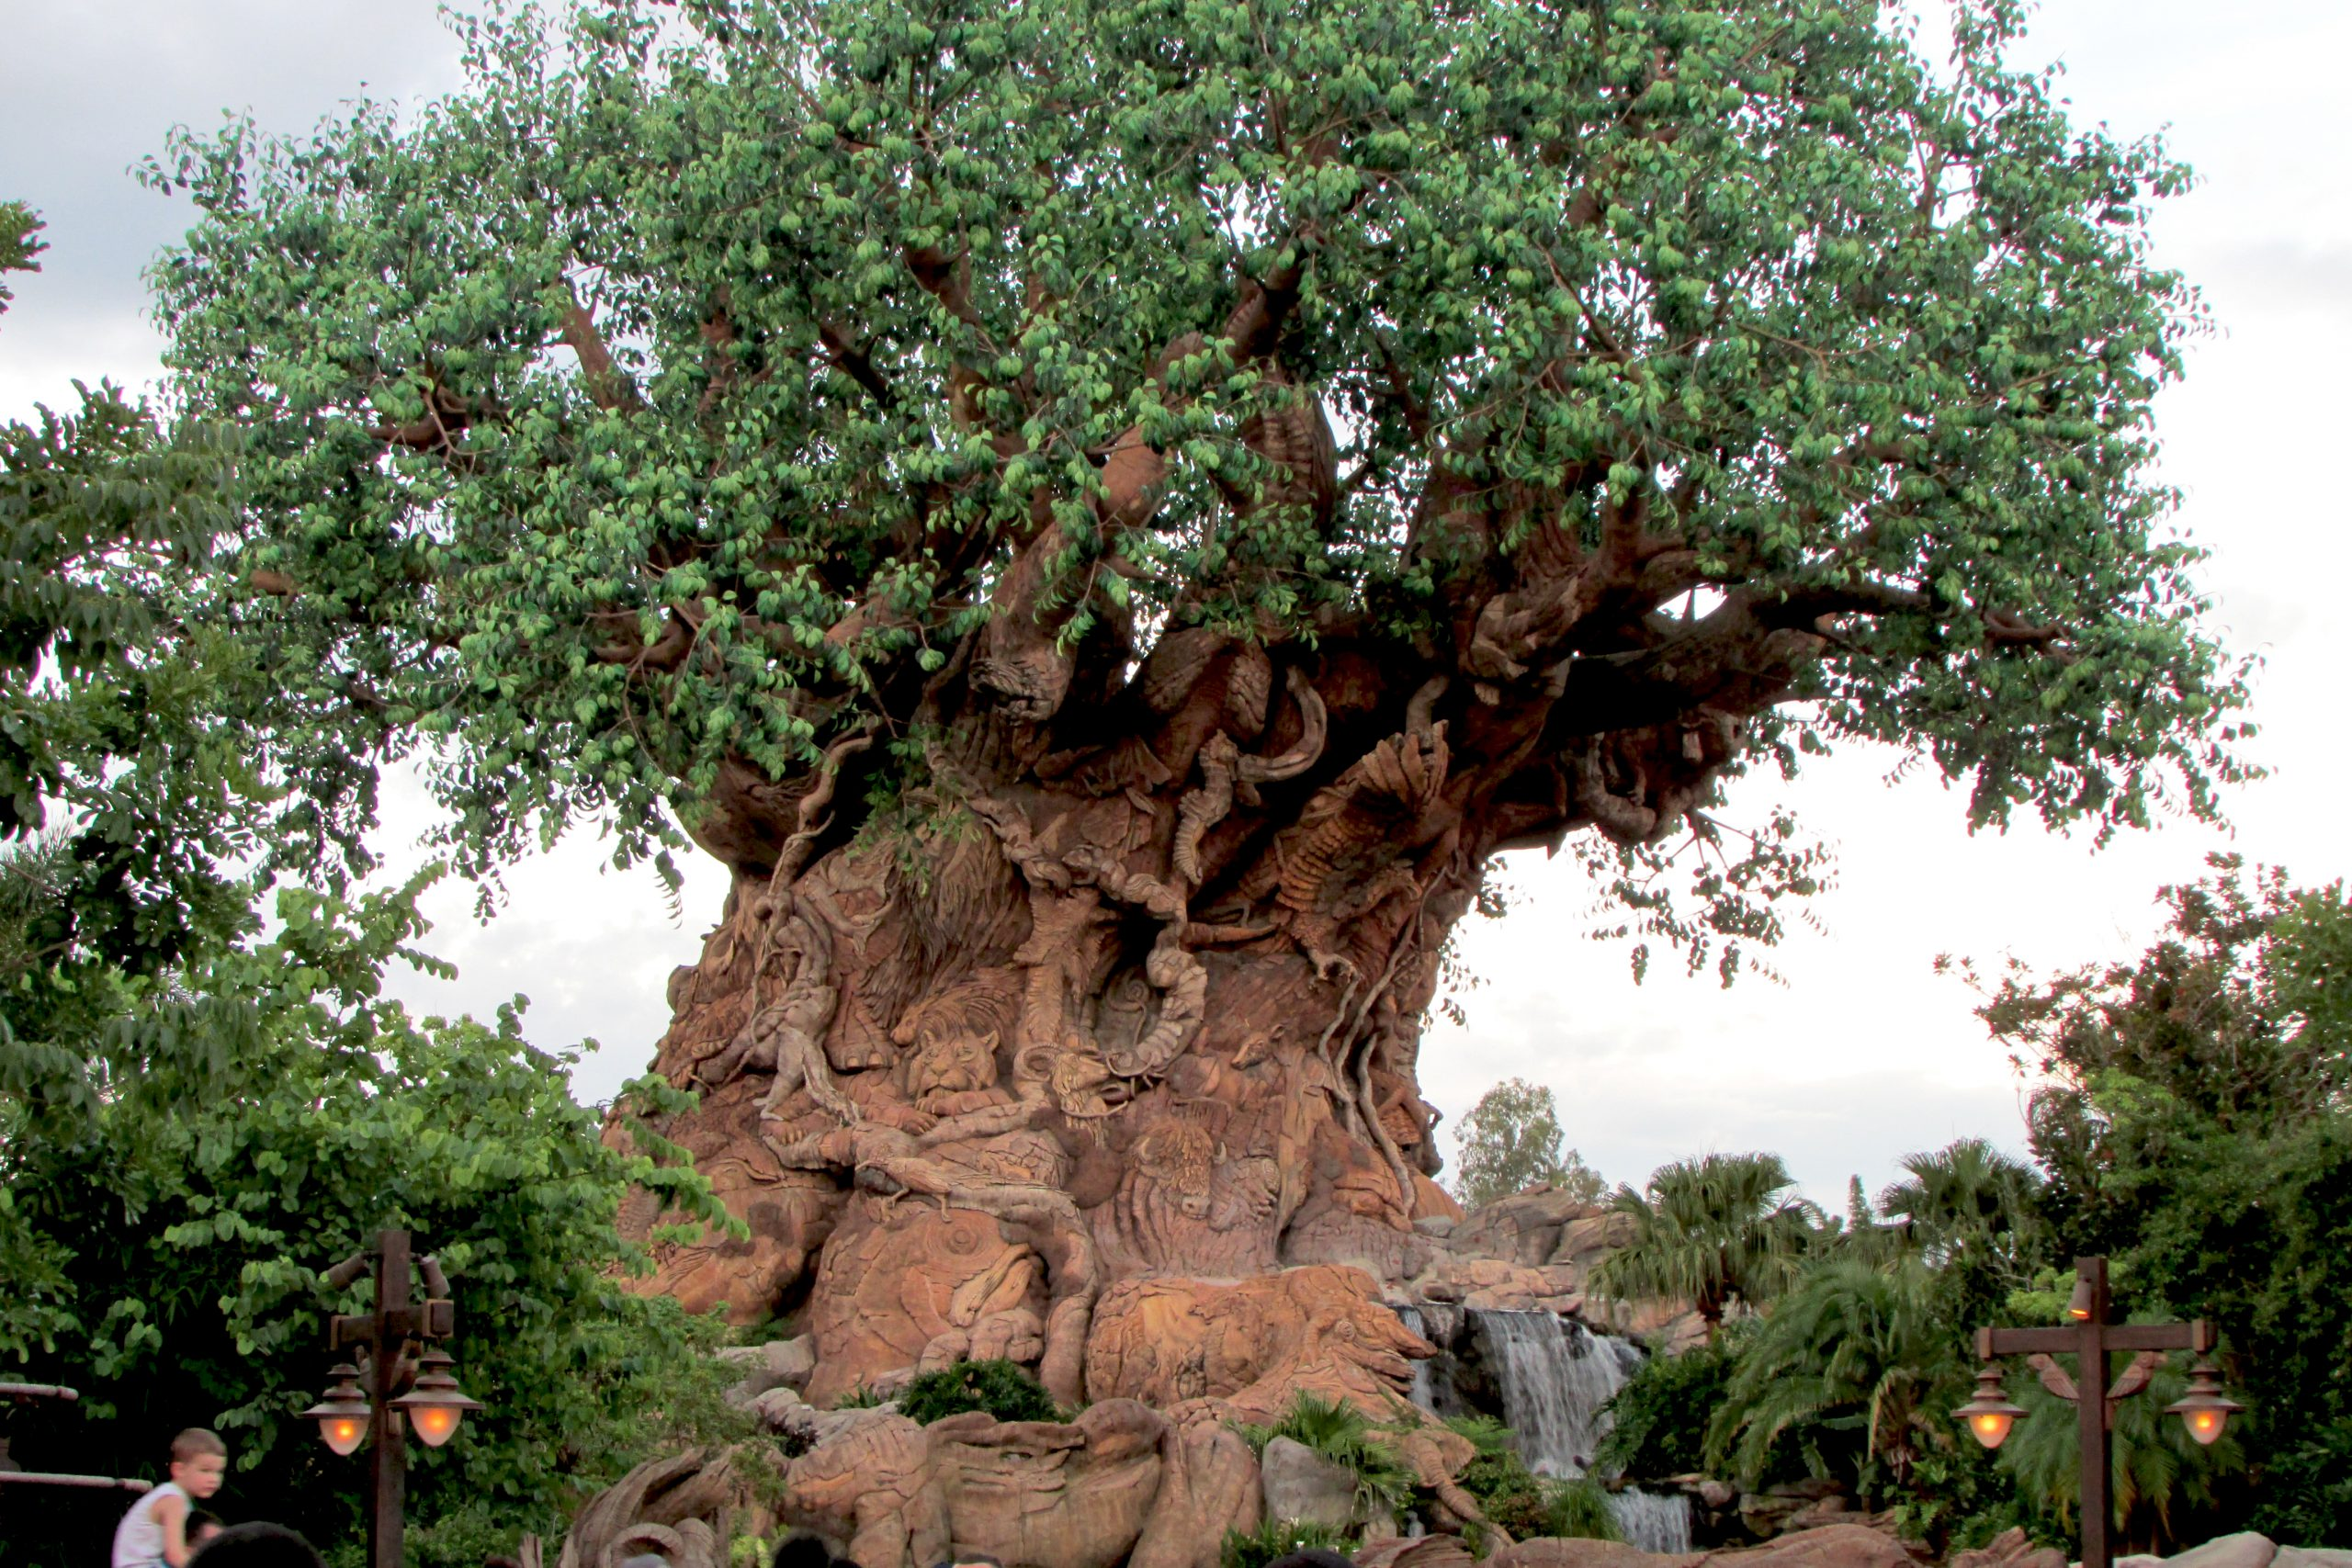 It's Tough to be a Bug is inside The Tree of Life in Animal Kingdom